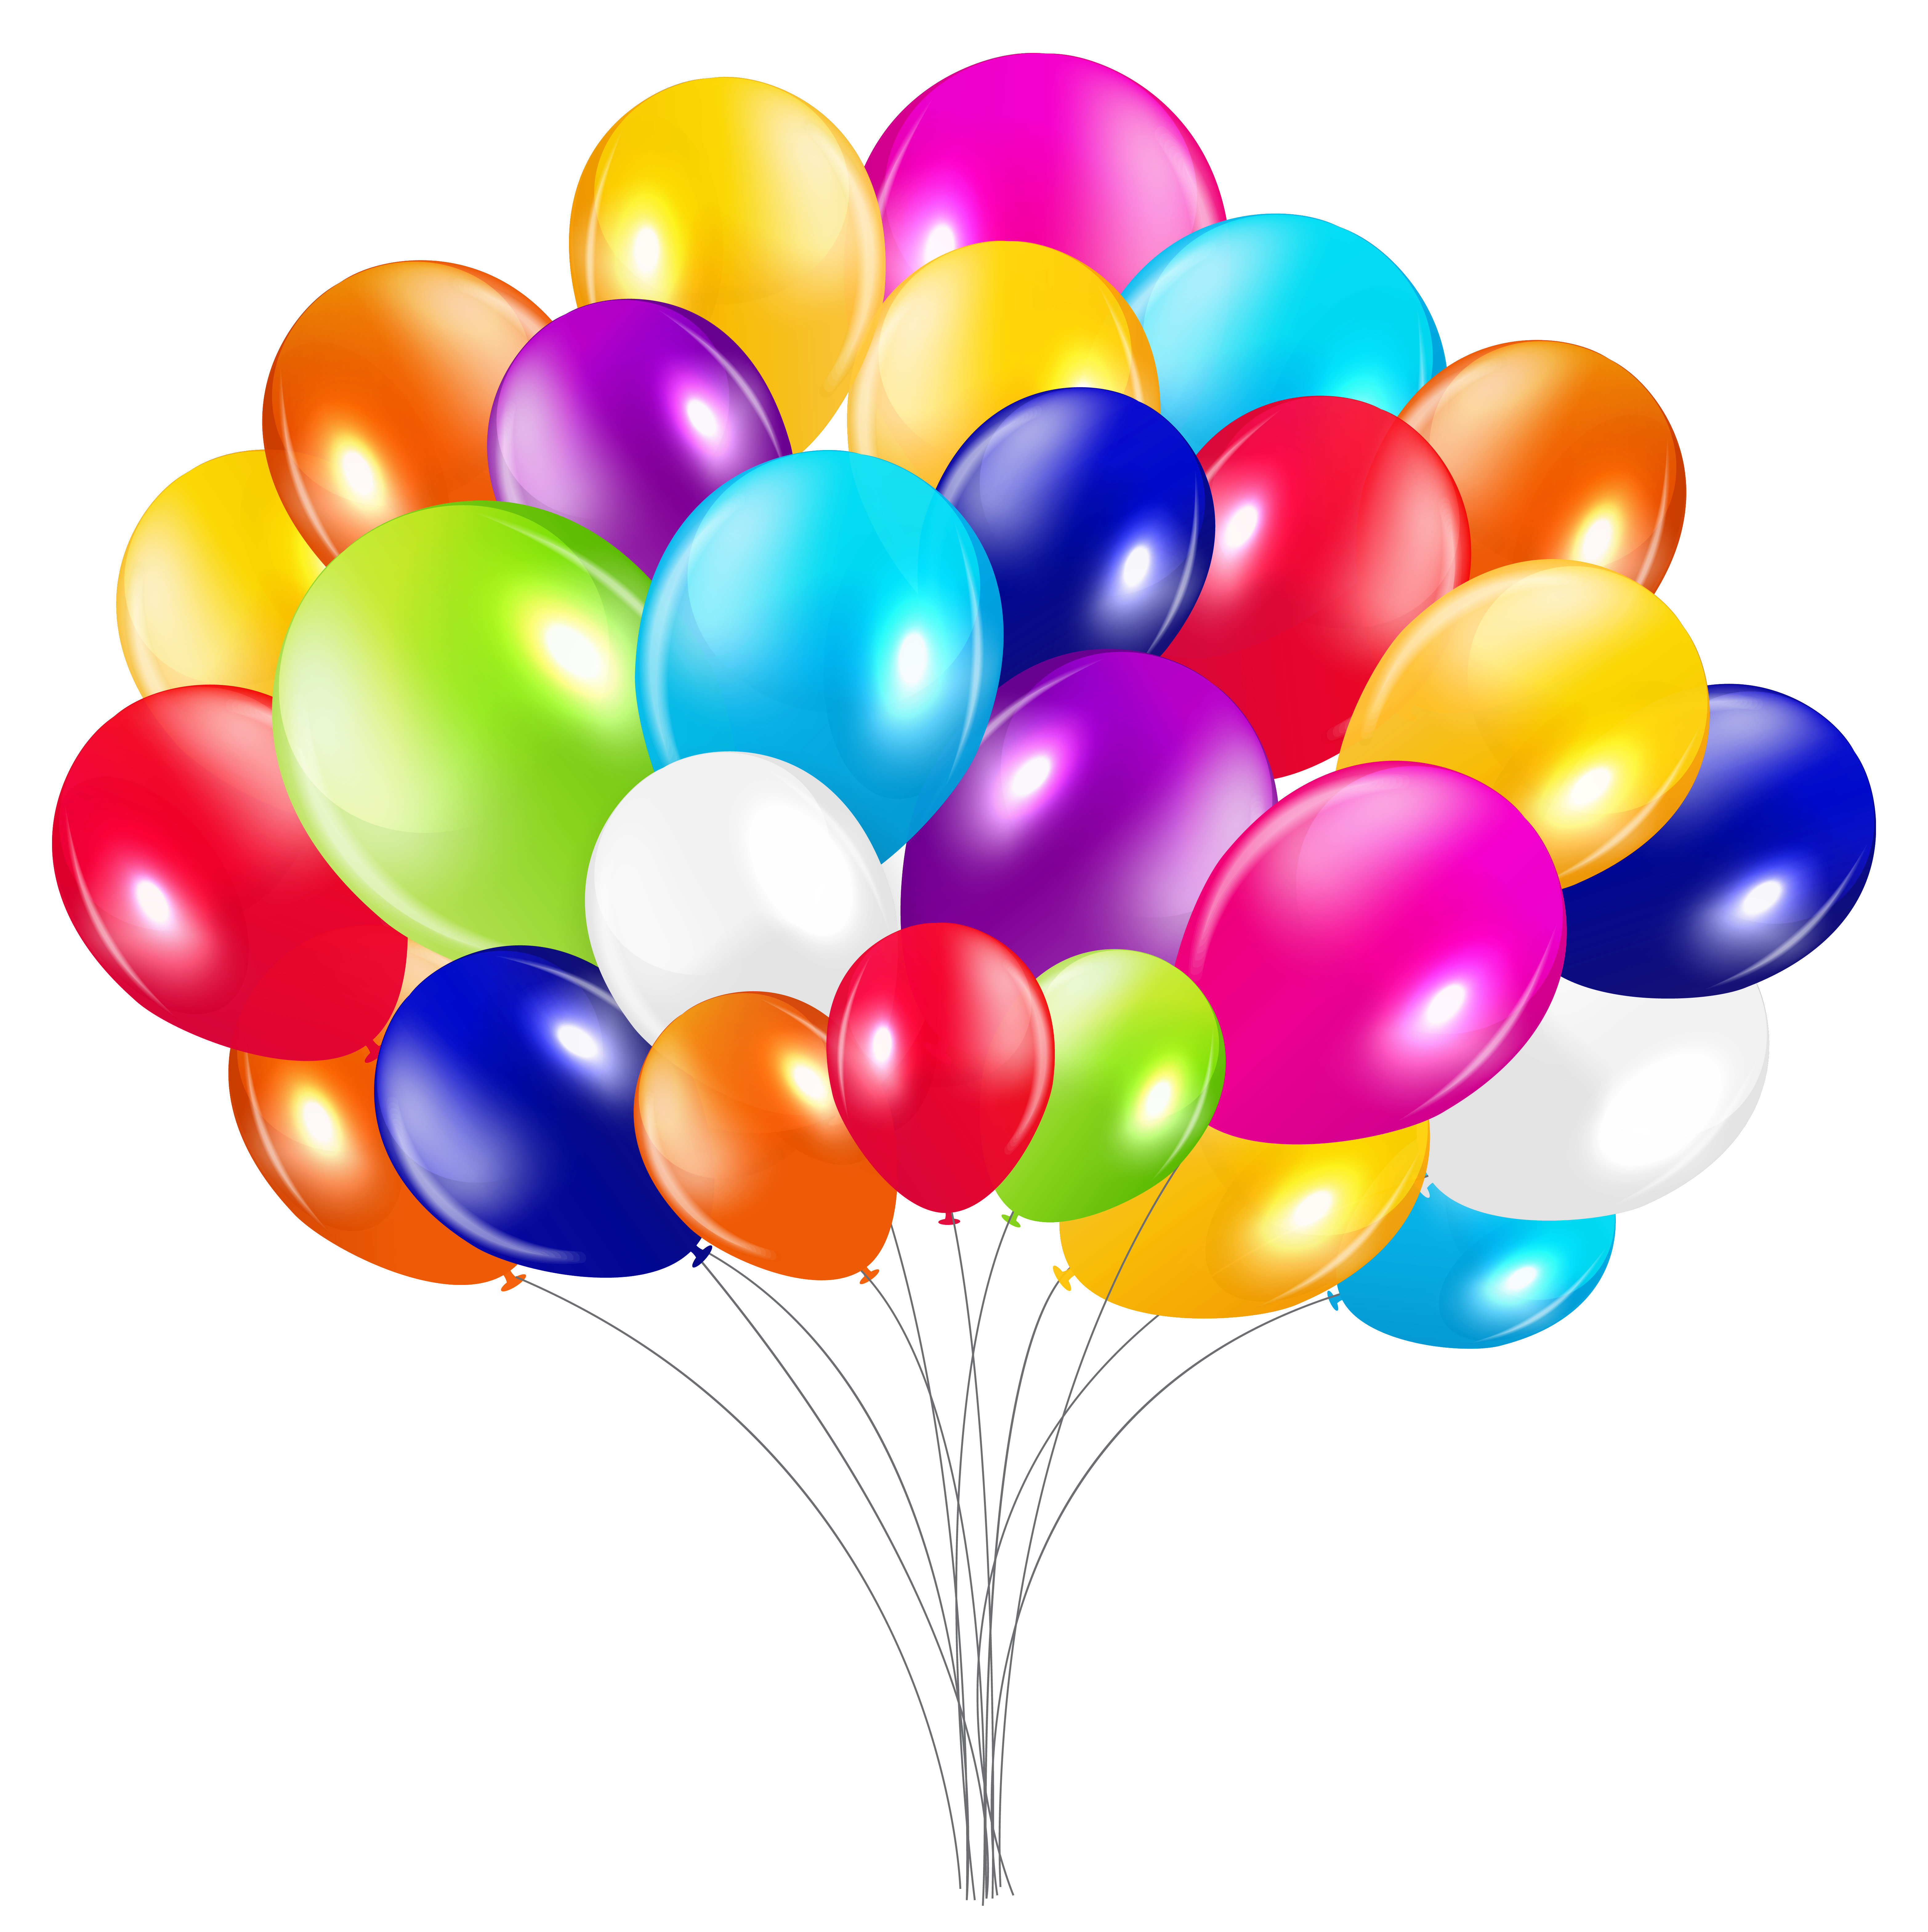 Clipart diamond bunch. Of balloons png image